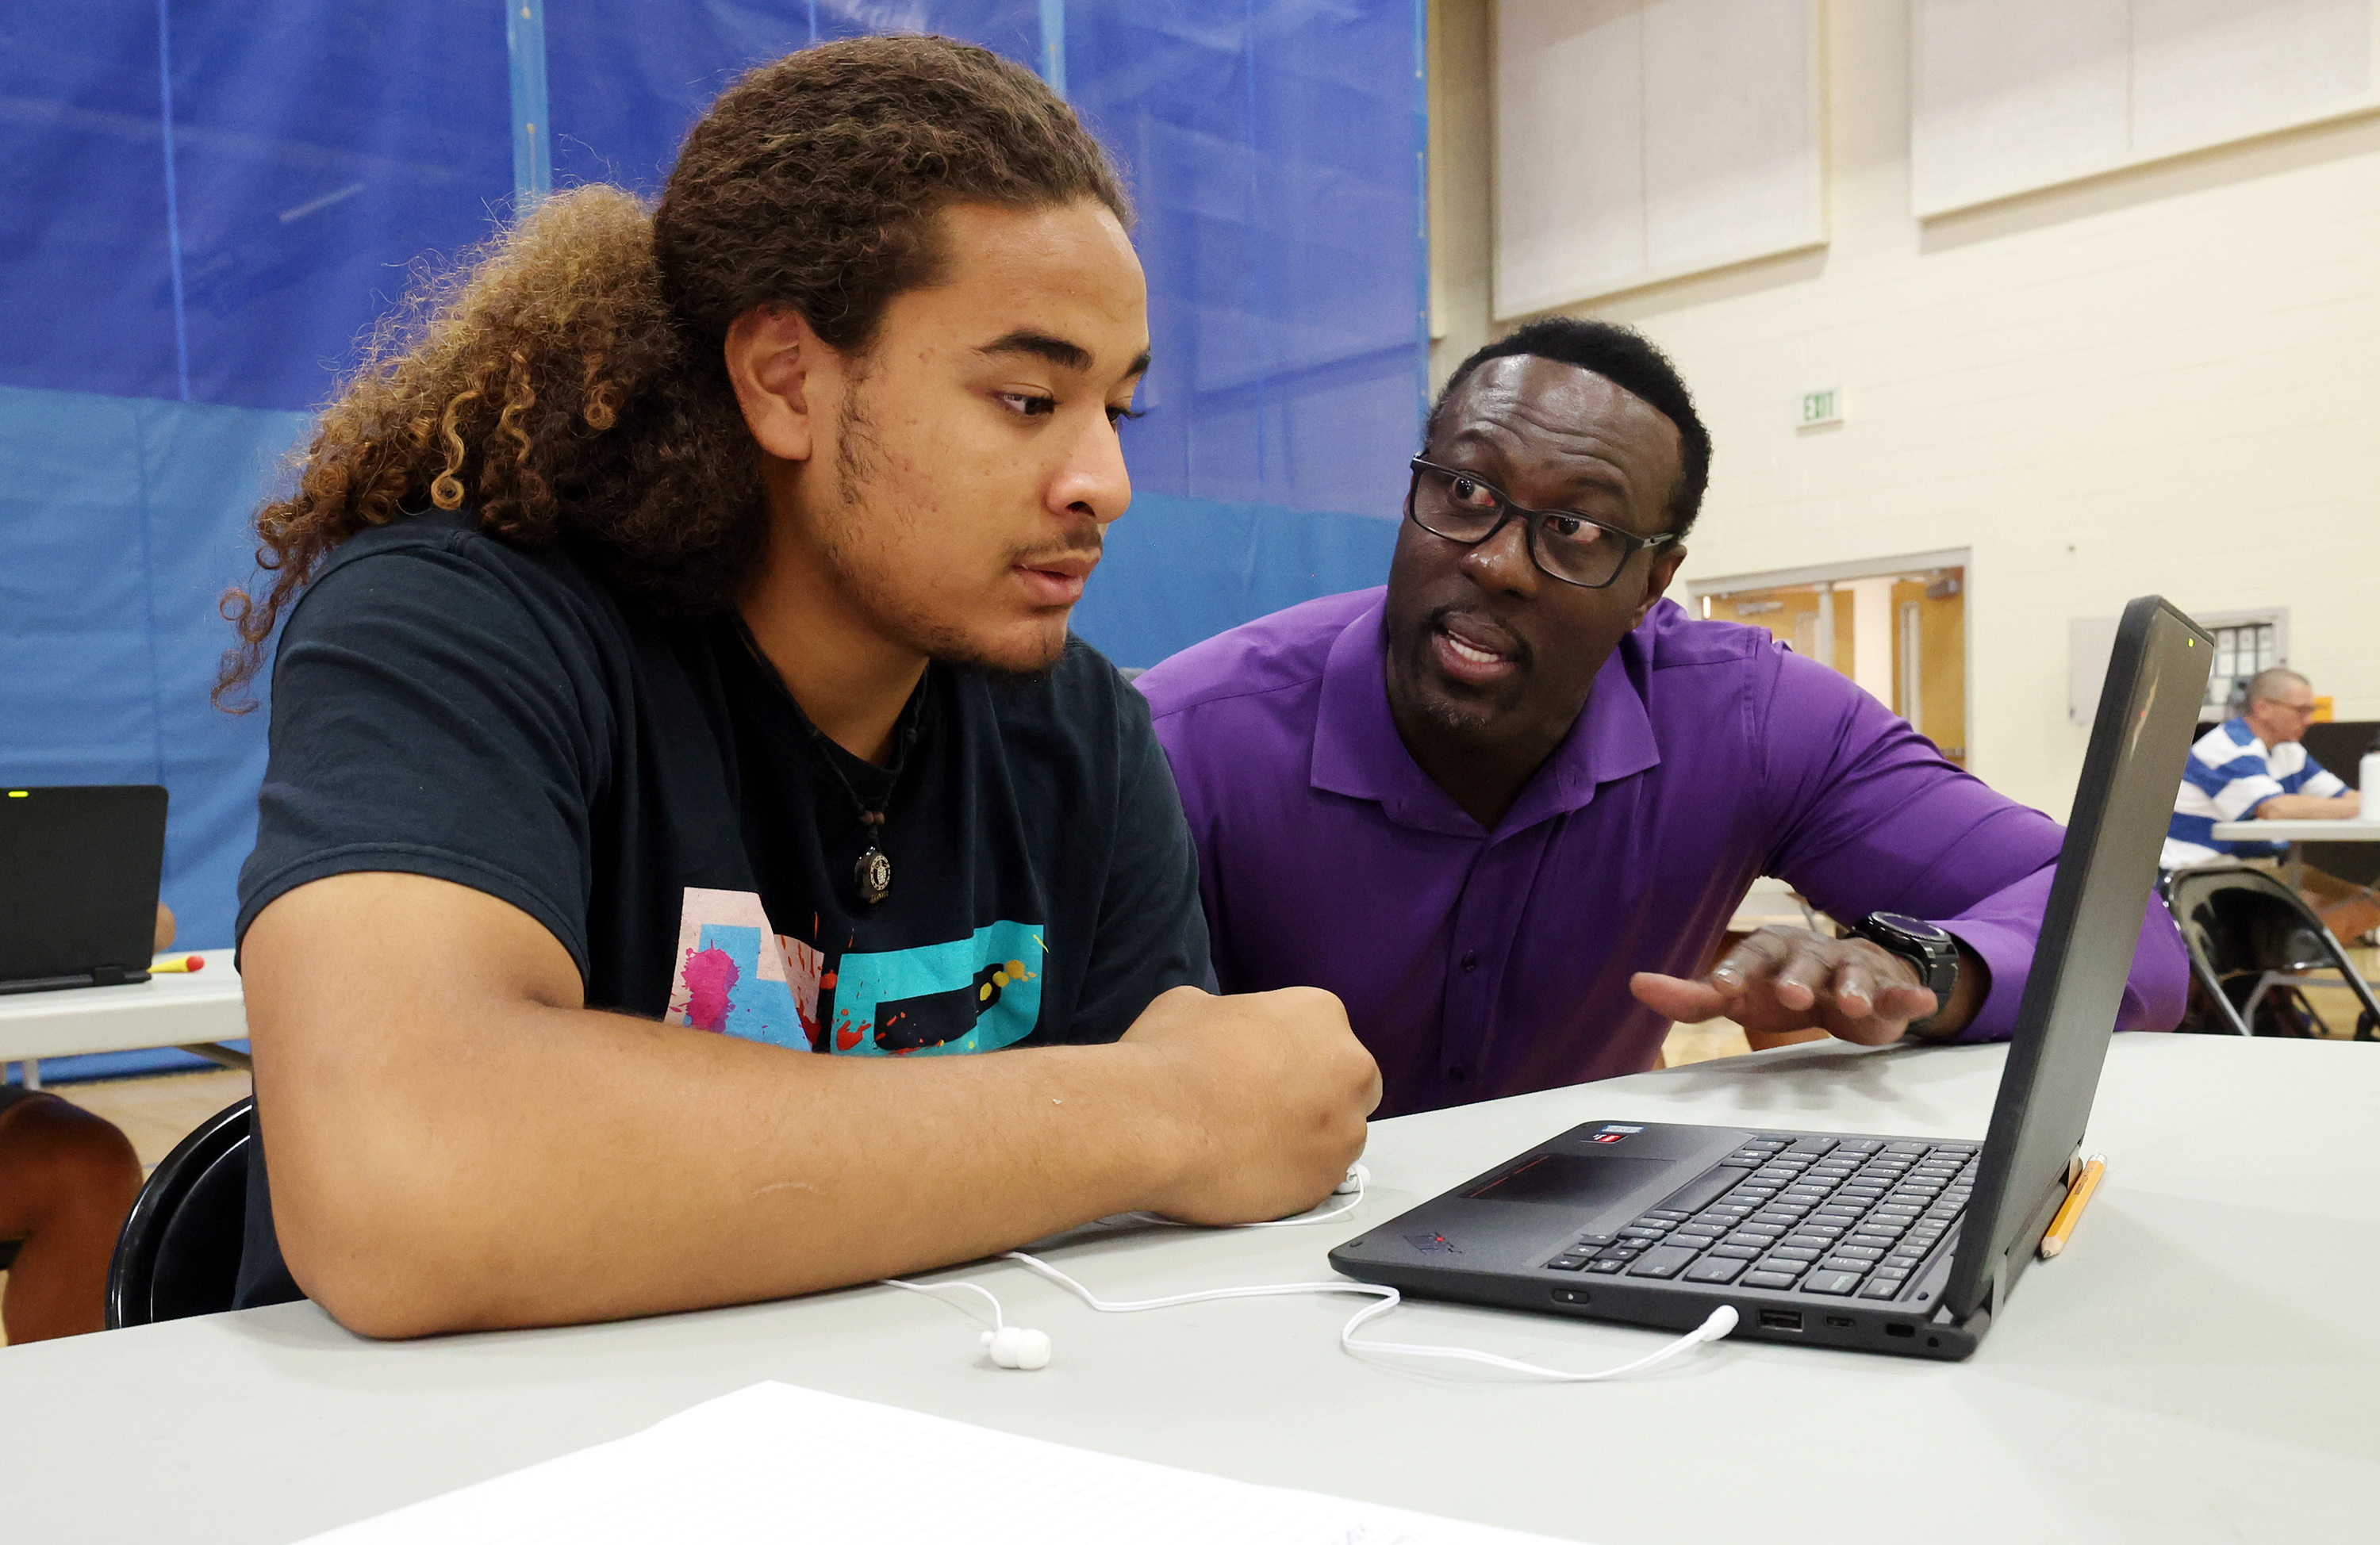 West High School student Mani Havea, left, talks with Timothy Gadson, incoming Salt Lake City School District superintendent, as Gadson tours the school in Salt Lake City on Tuesday, June 29, 2021. Gadson will take the helm of the district in July.